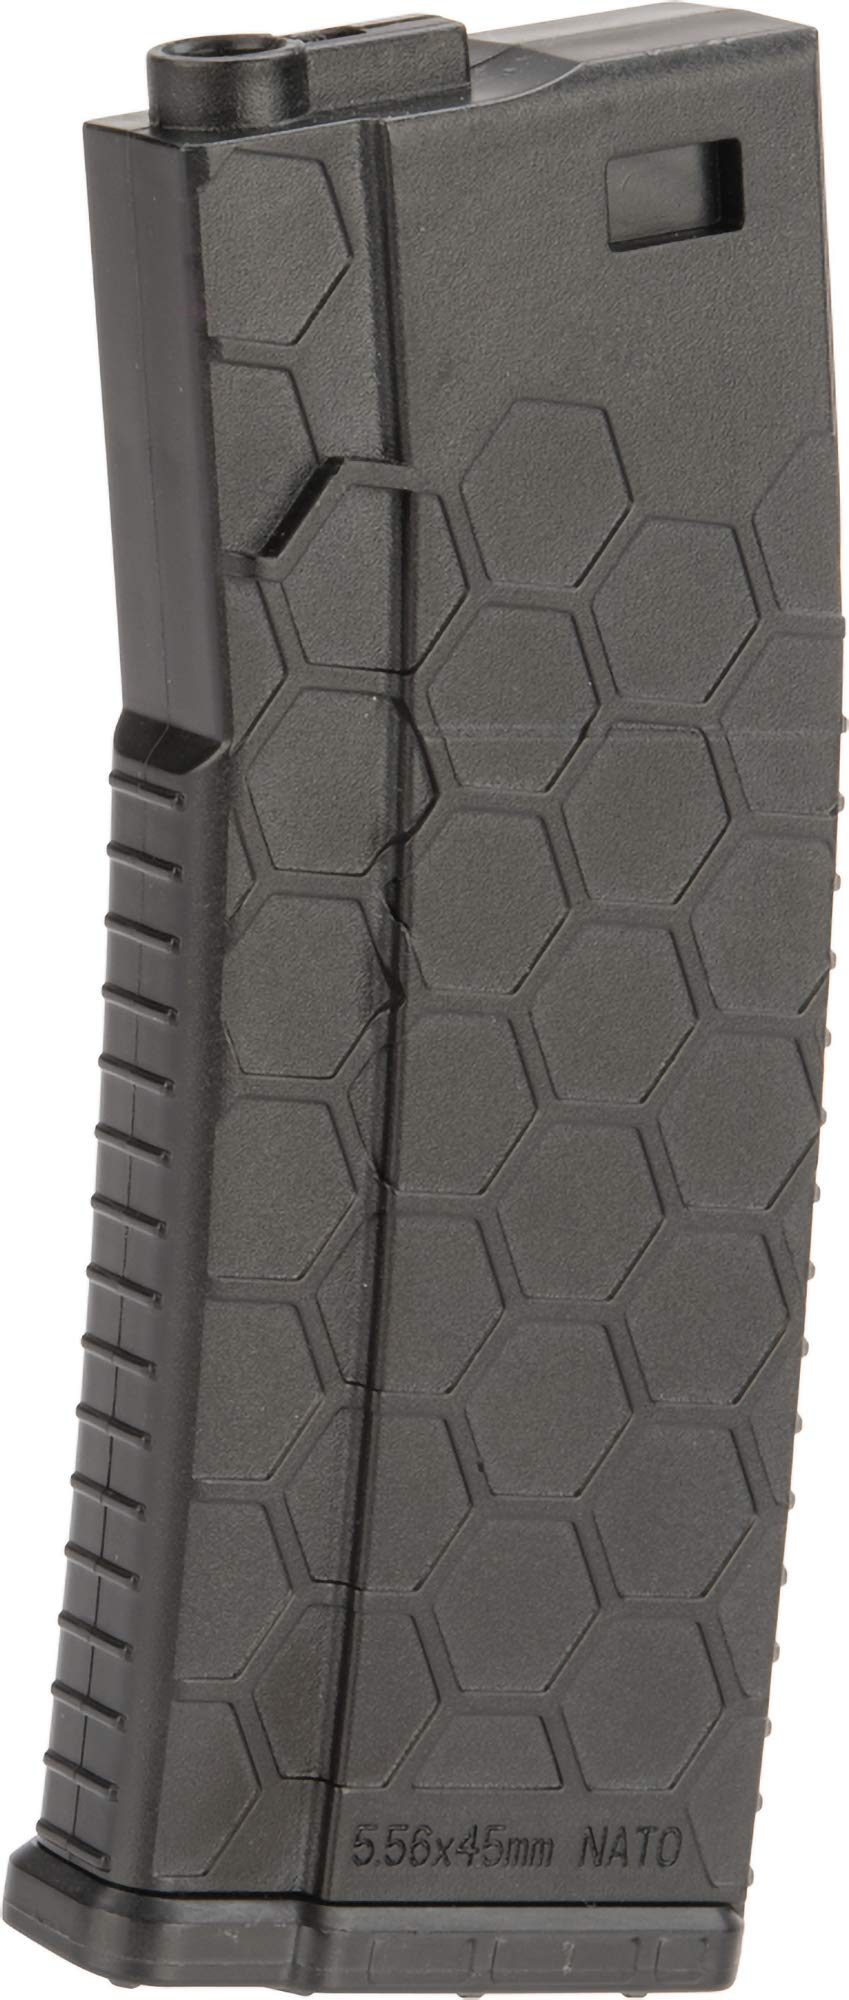 Evike Hexmag ECO Airsoft 120rds Polymer Mid-Cap Magazine for M4 / M16 Series Airsoft AEG Rifles(Color: Black/Single) by Evike